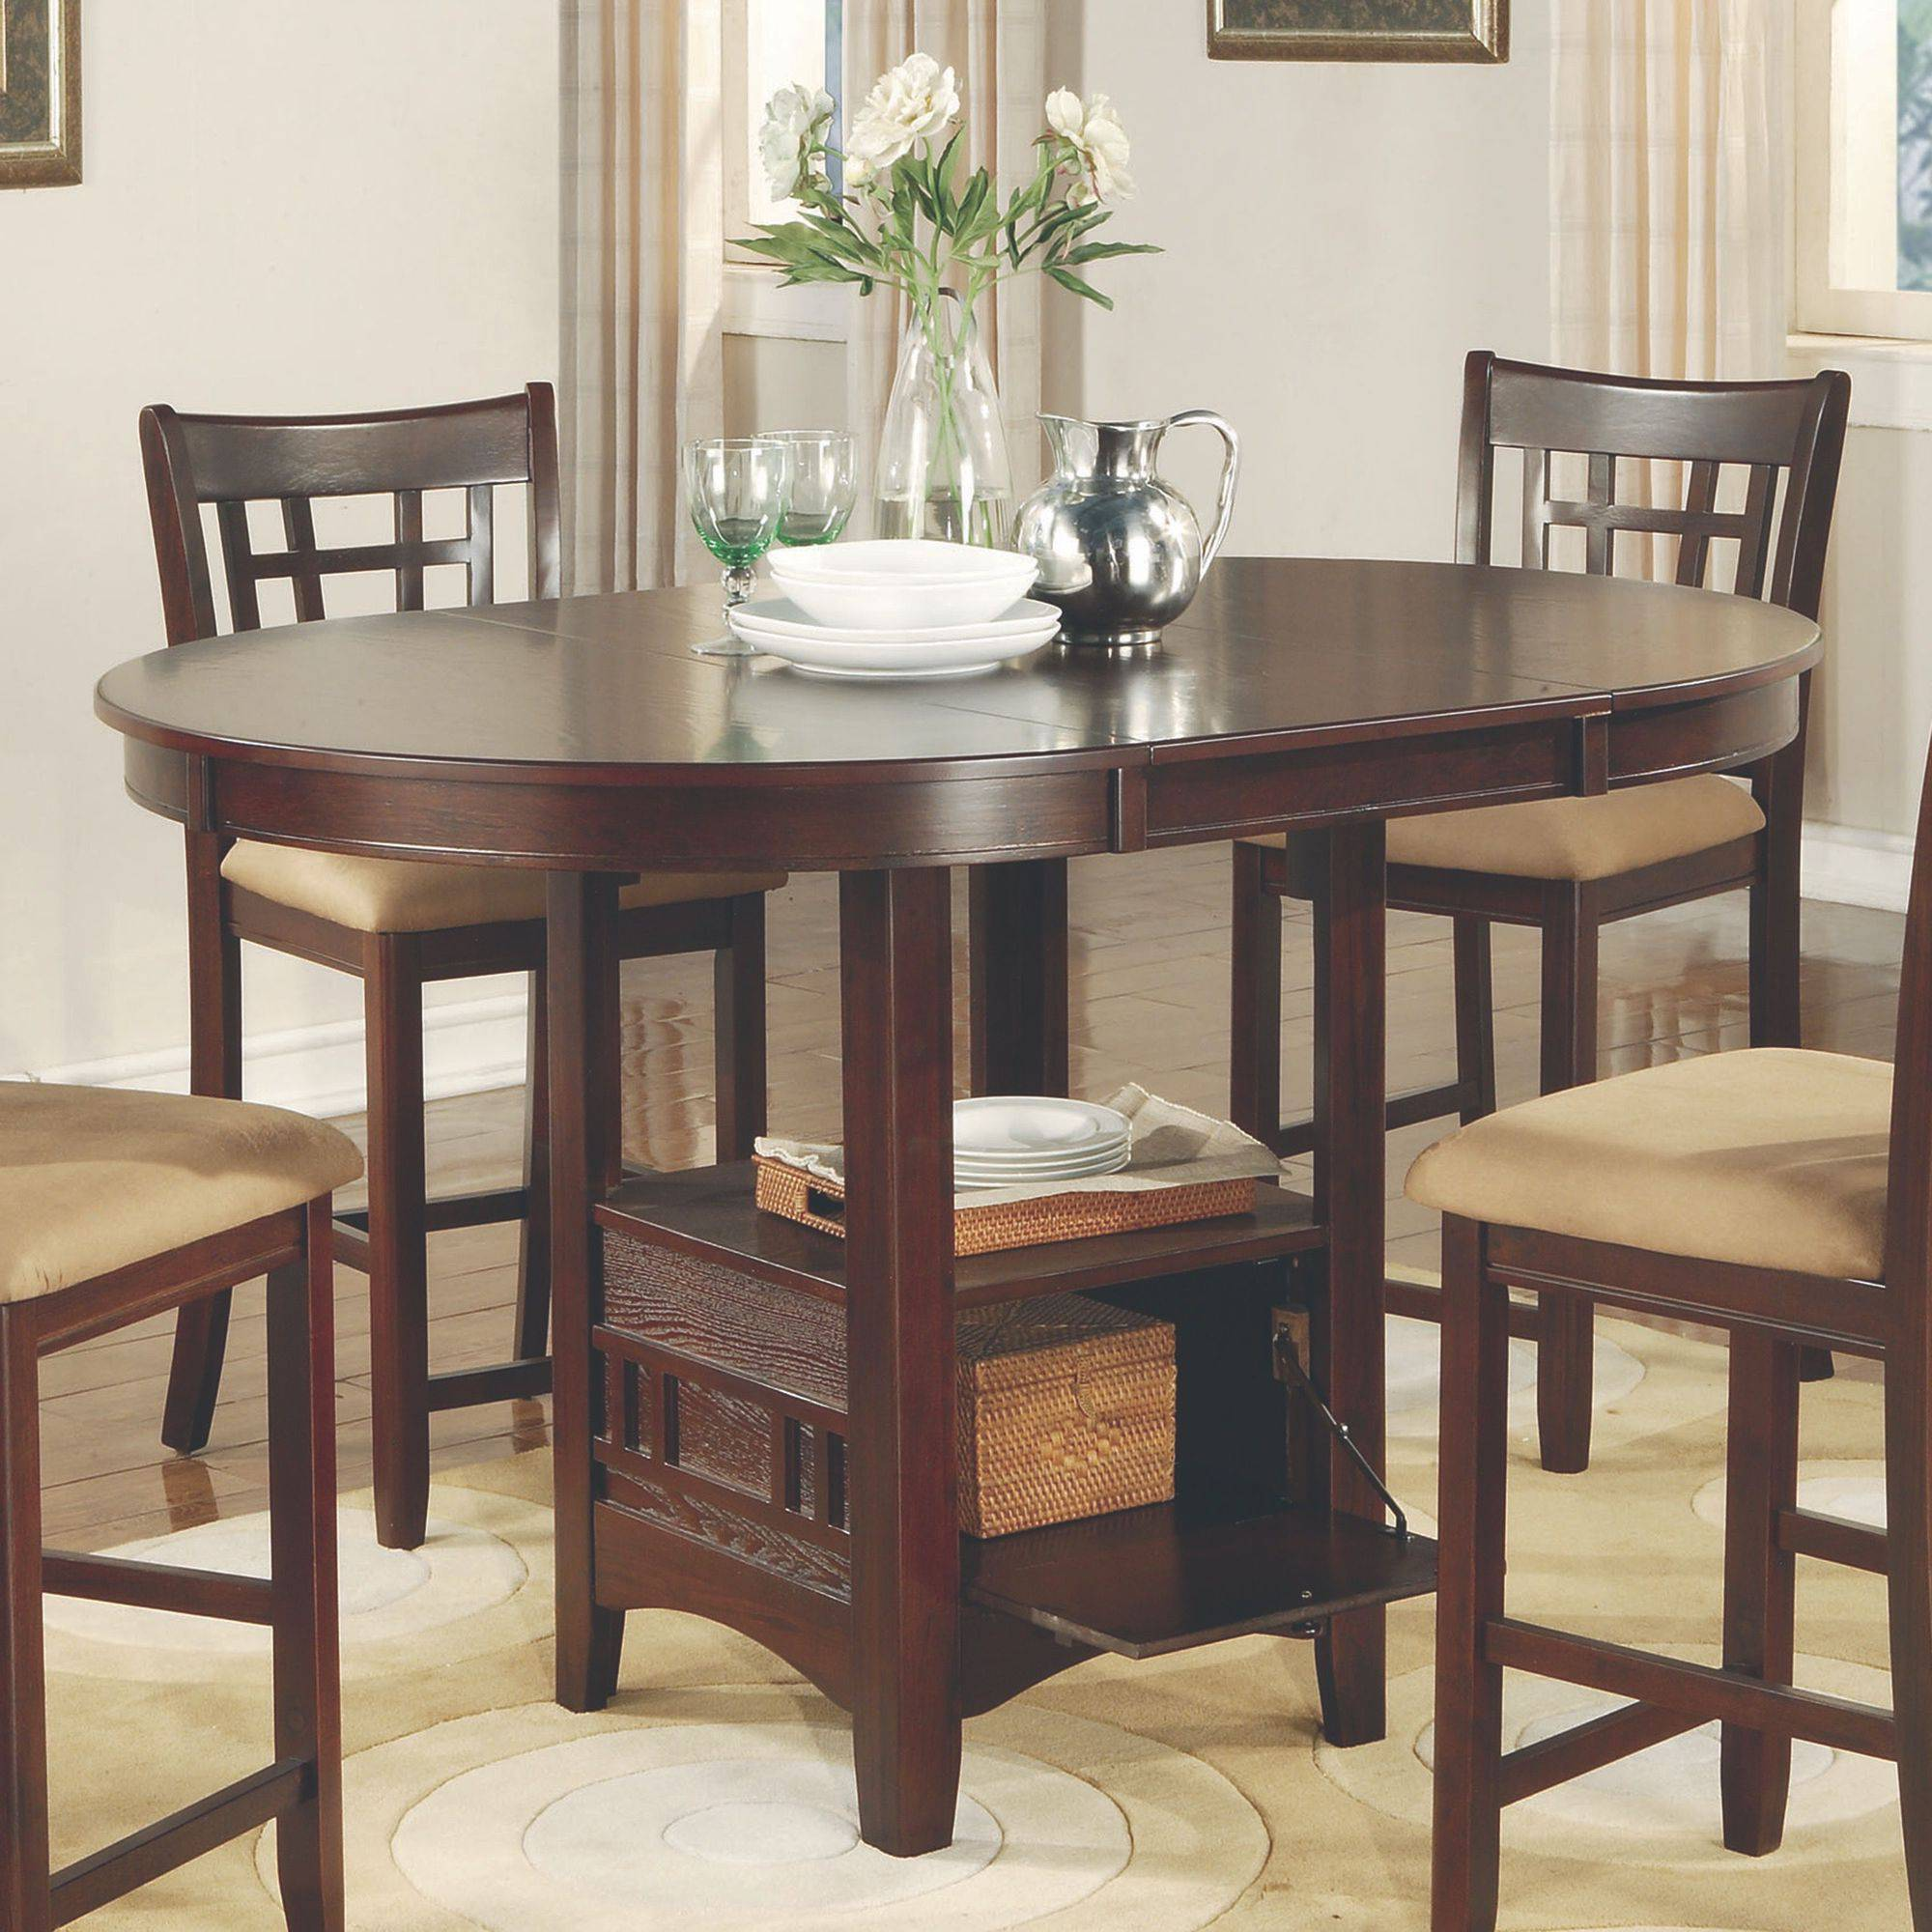 Coaster Company Jaden Counter Height Dining Table - Walmart.com